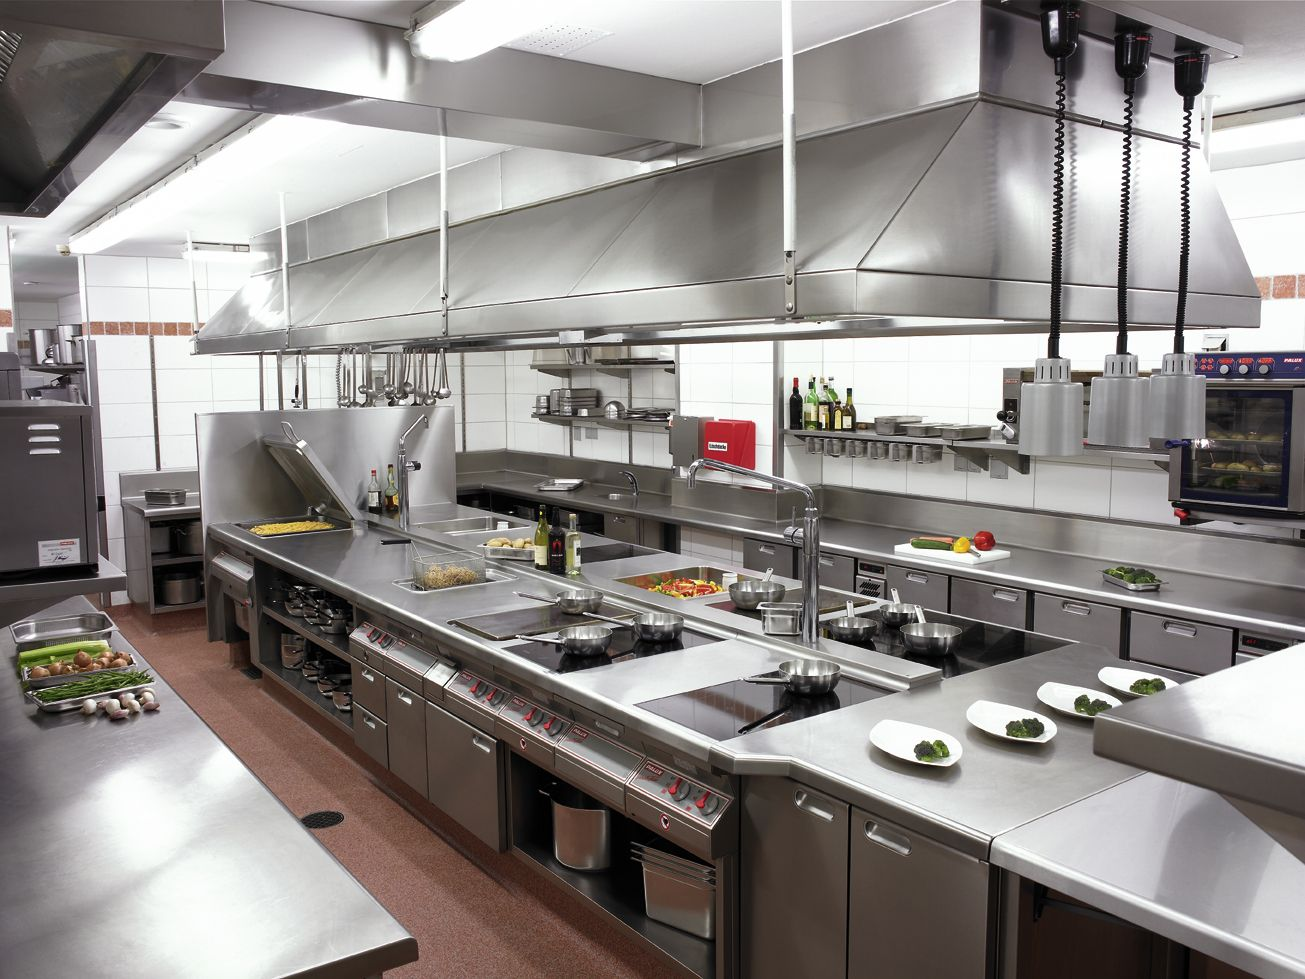 Restaurant kitchen design layout example - Industrial Kitchens Restaurant Kitchen Designrestaurant